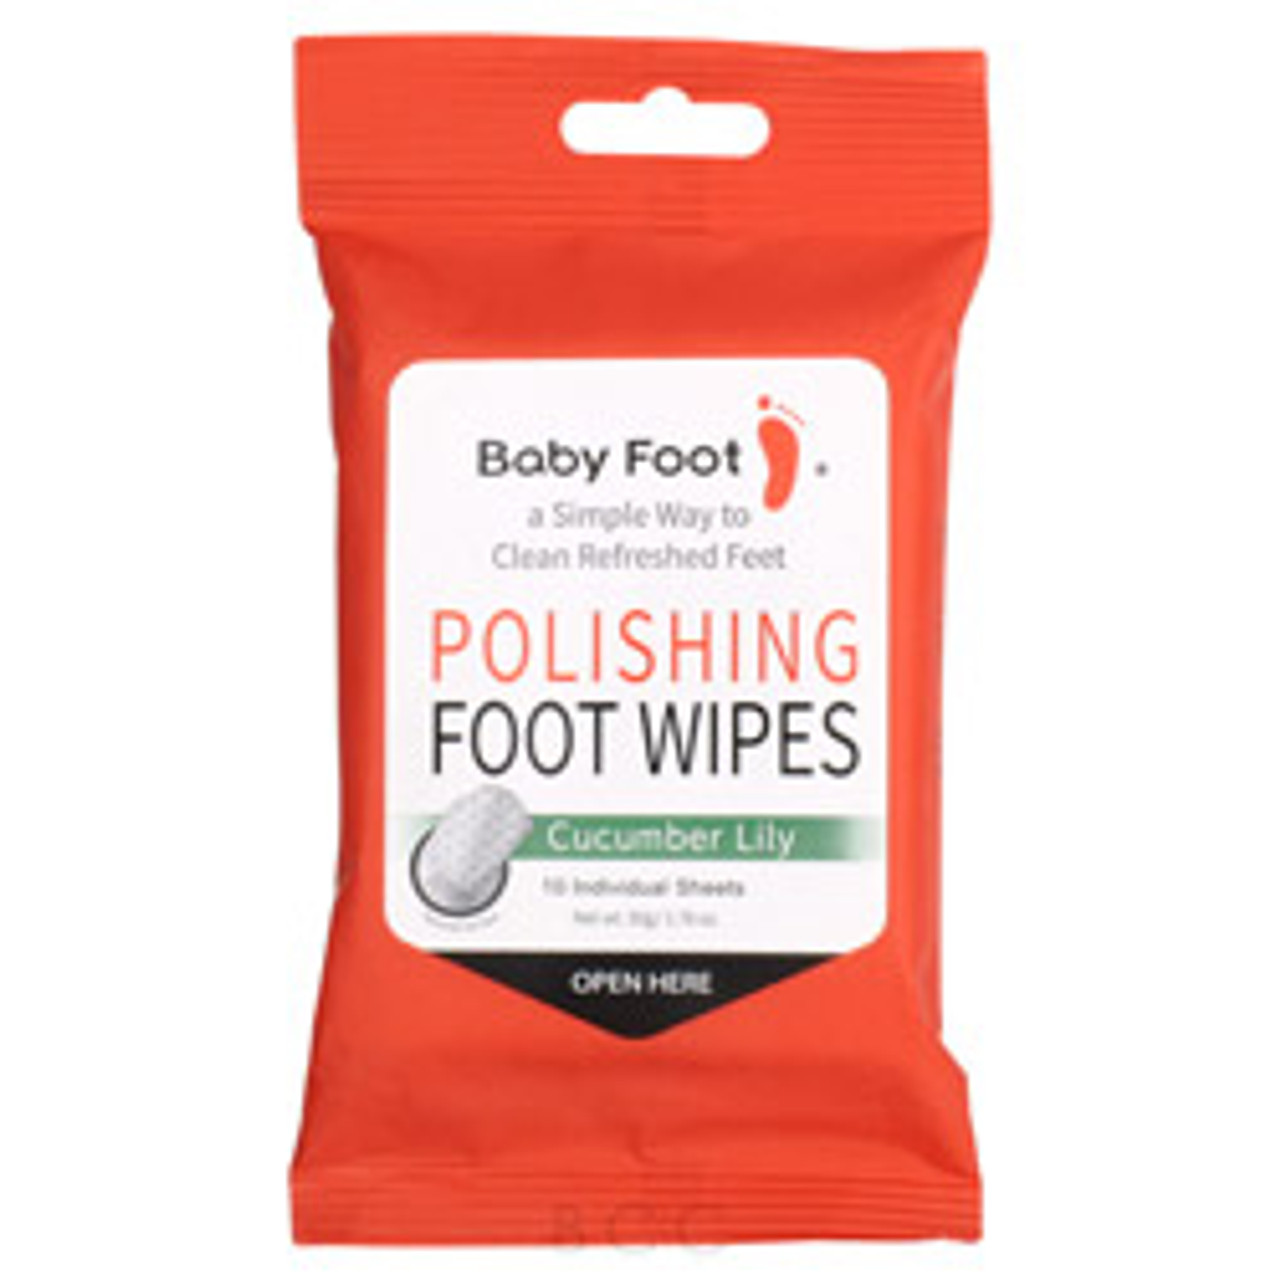 Baby Foot Polishing Foot Wipes 10 Applications  Make sure your feet are always clean and looking great with these foot wipes! Wipes that have a textured feel to gently exfoliate the feet while removing residue and smoothing out impurities. Gives your feet the deepest clean possible and works great to use after the peeling process of the Baby Foot Exfoliation Foot Peels!